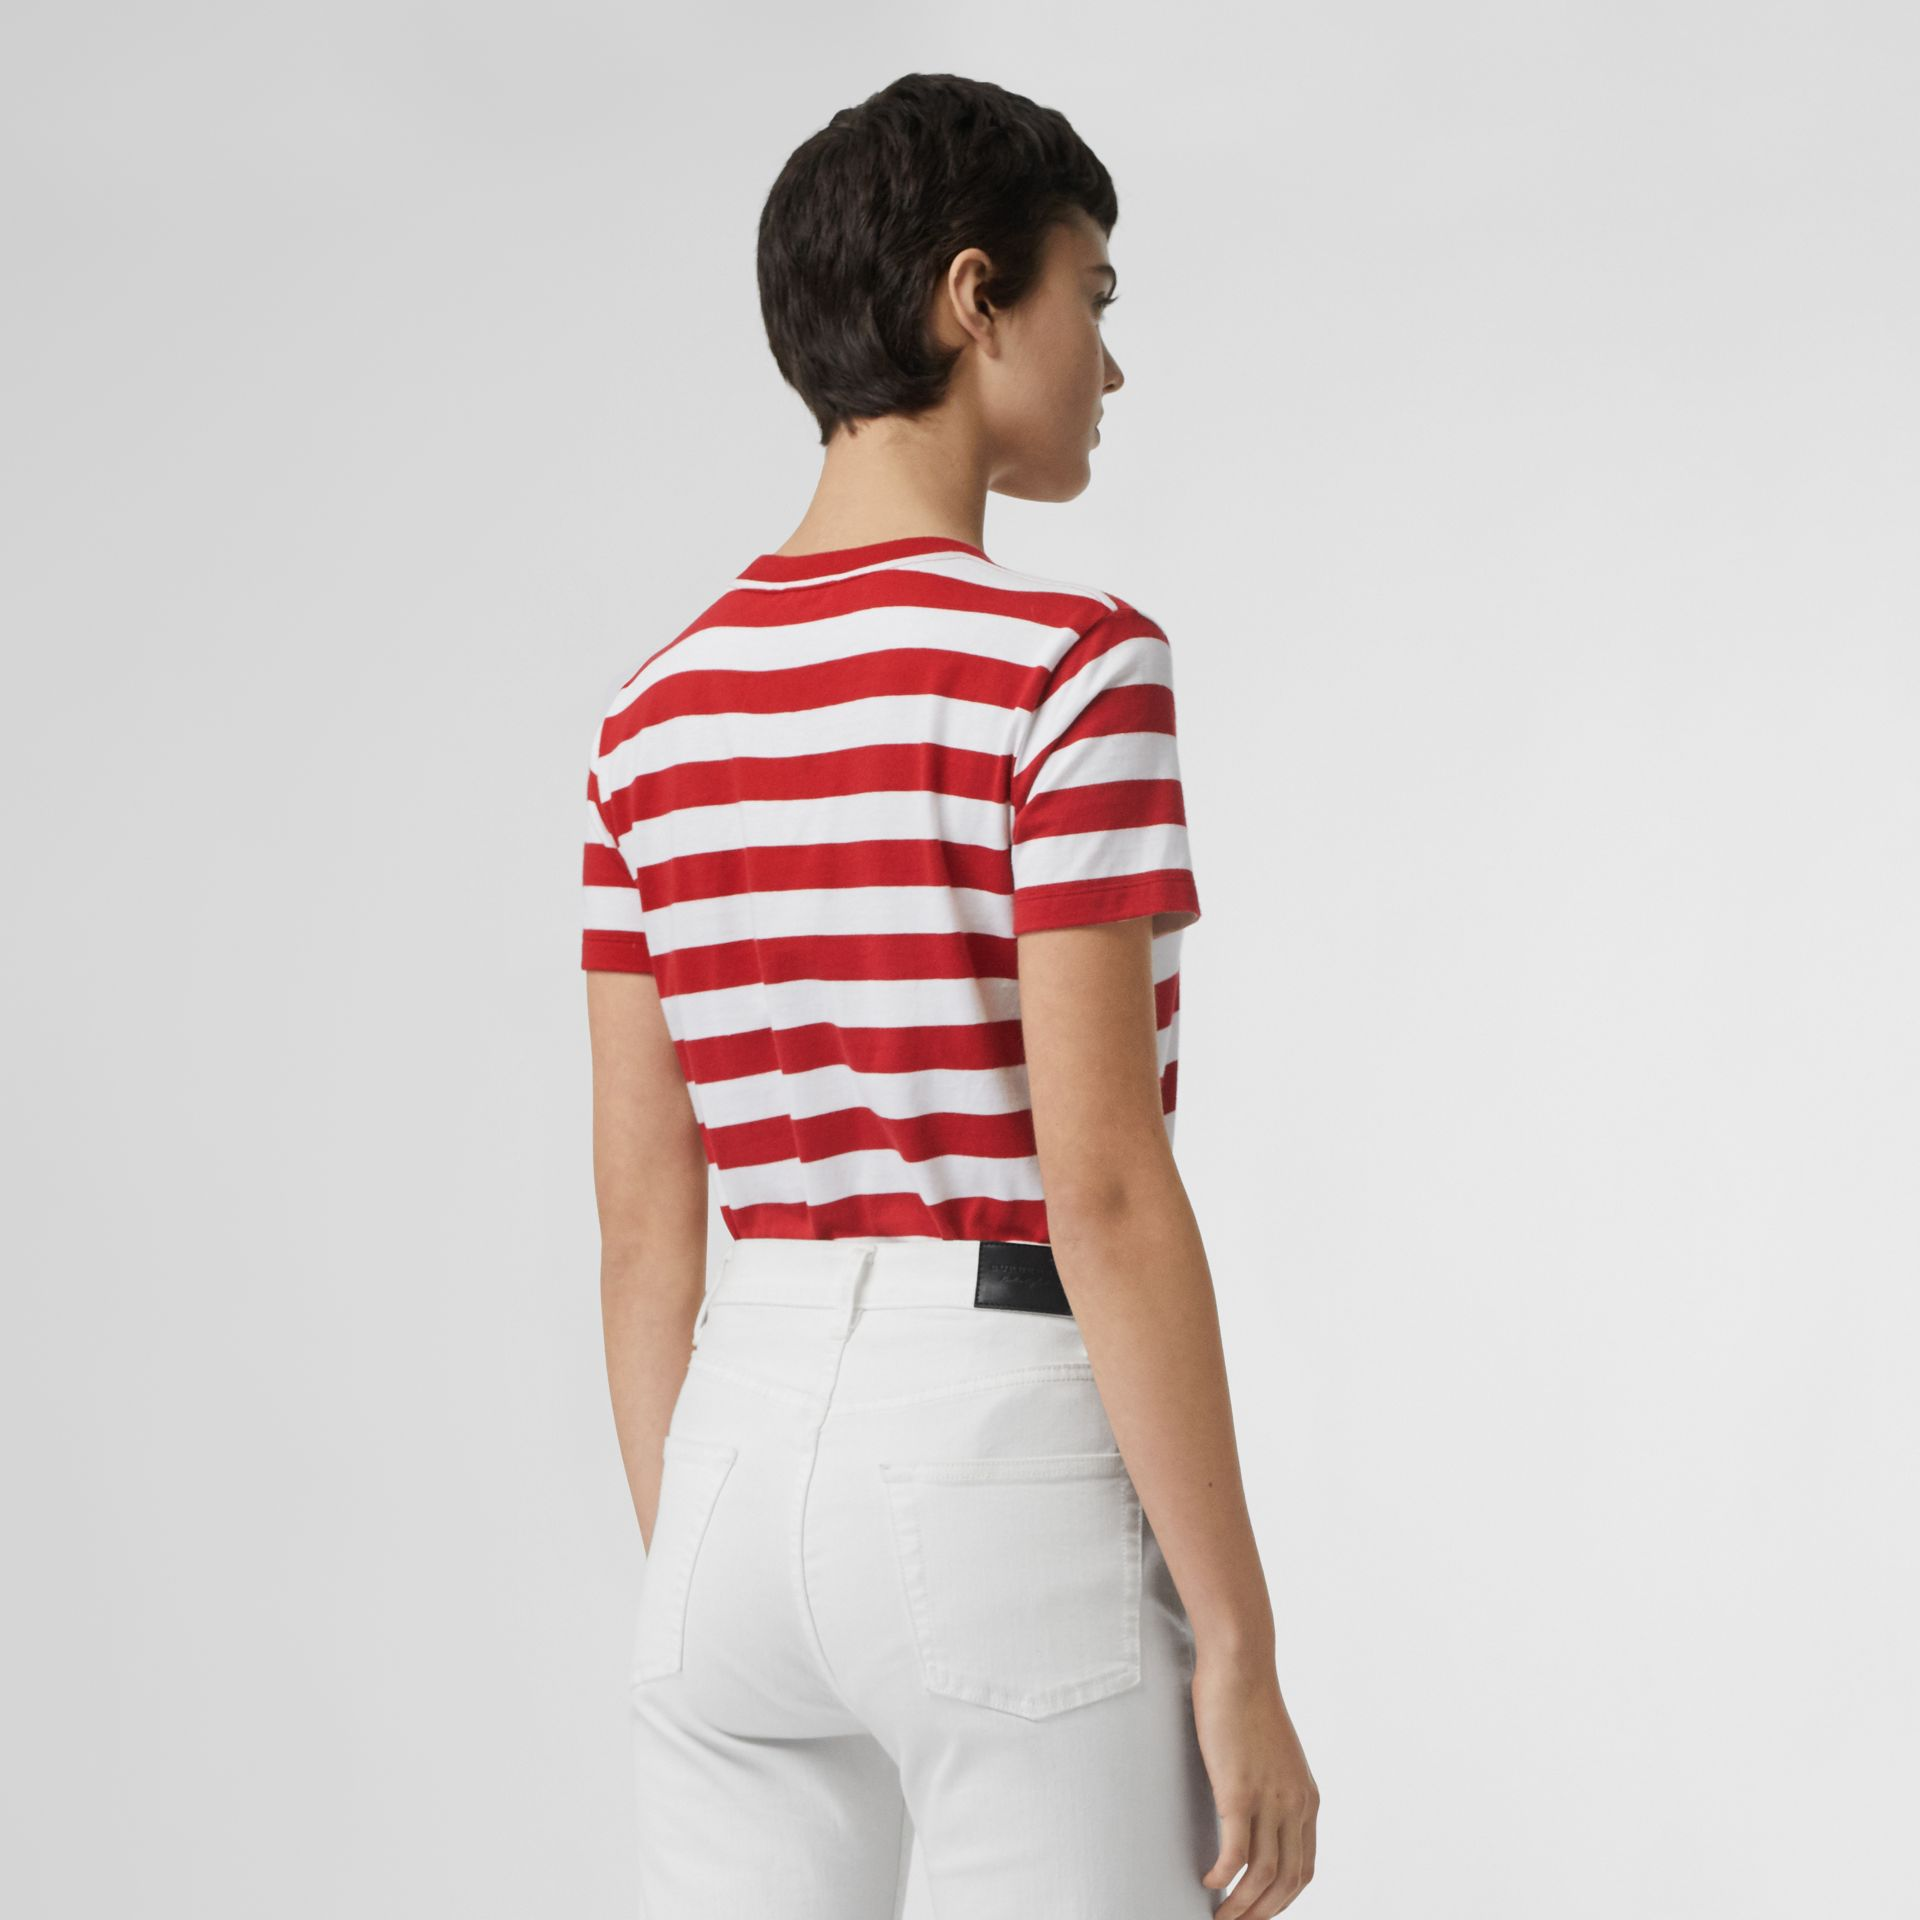 Crest Appliqué Striped Cotton T-shirt in Cadmium Red - Women | Burberry - gallery image 2